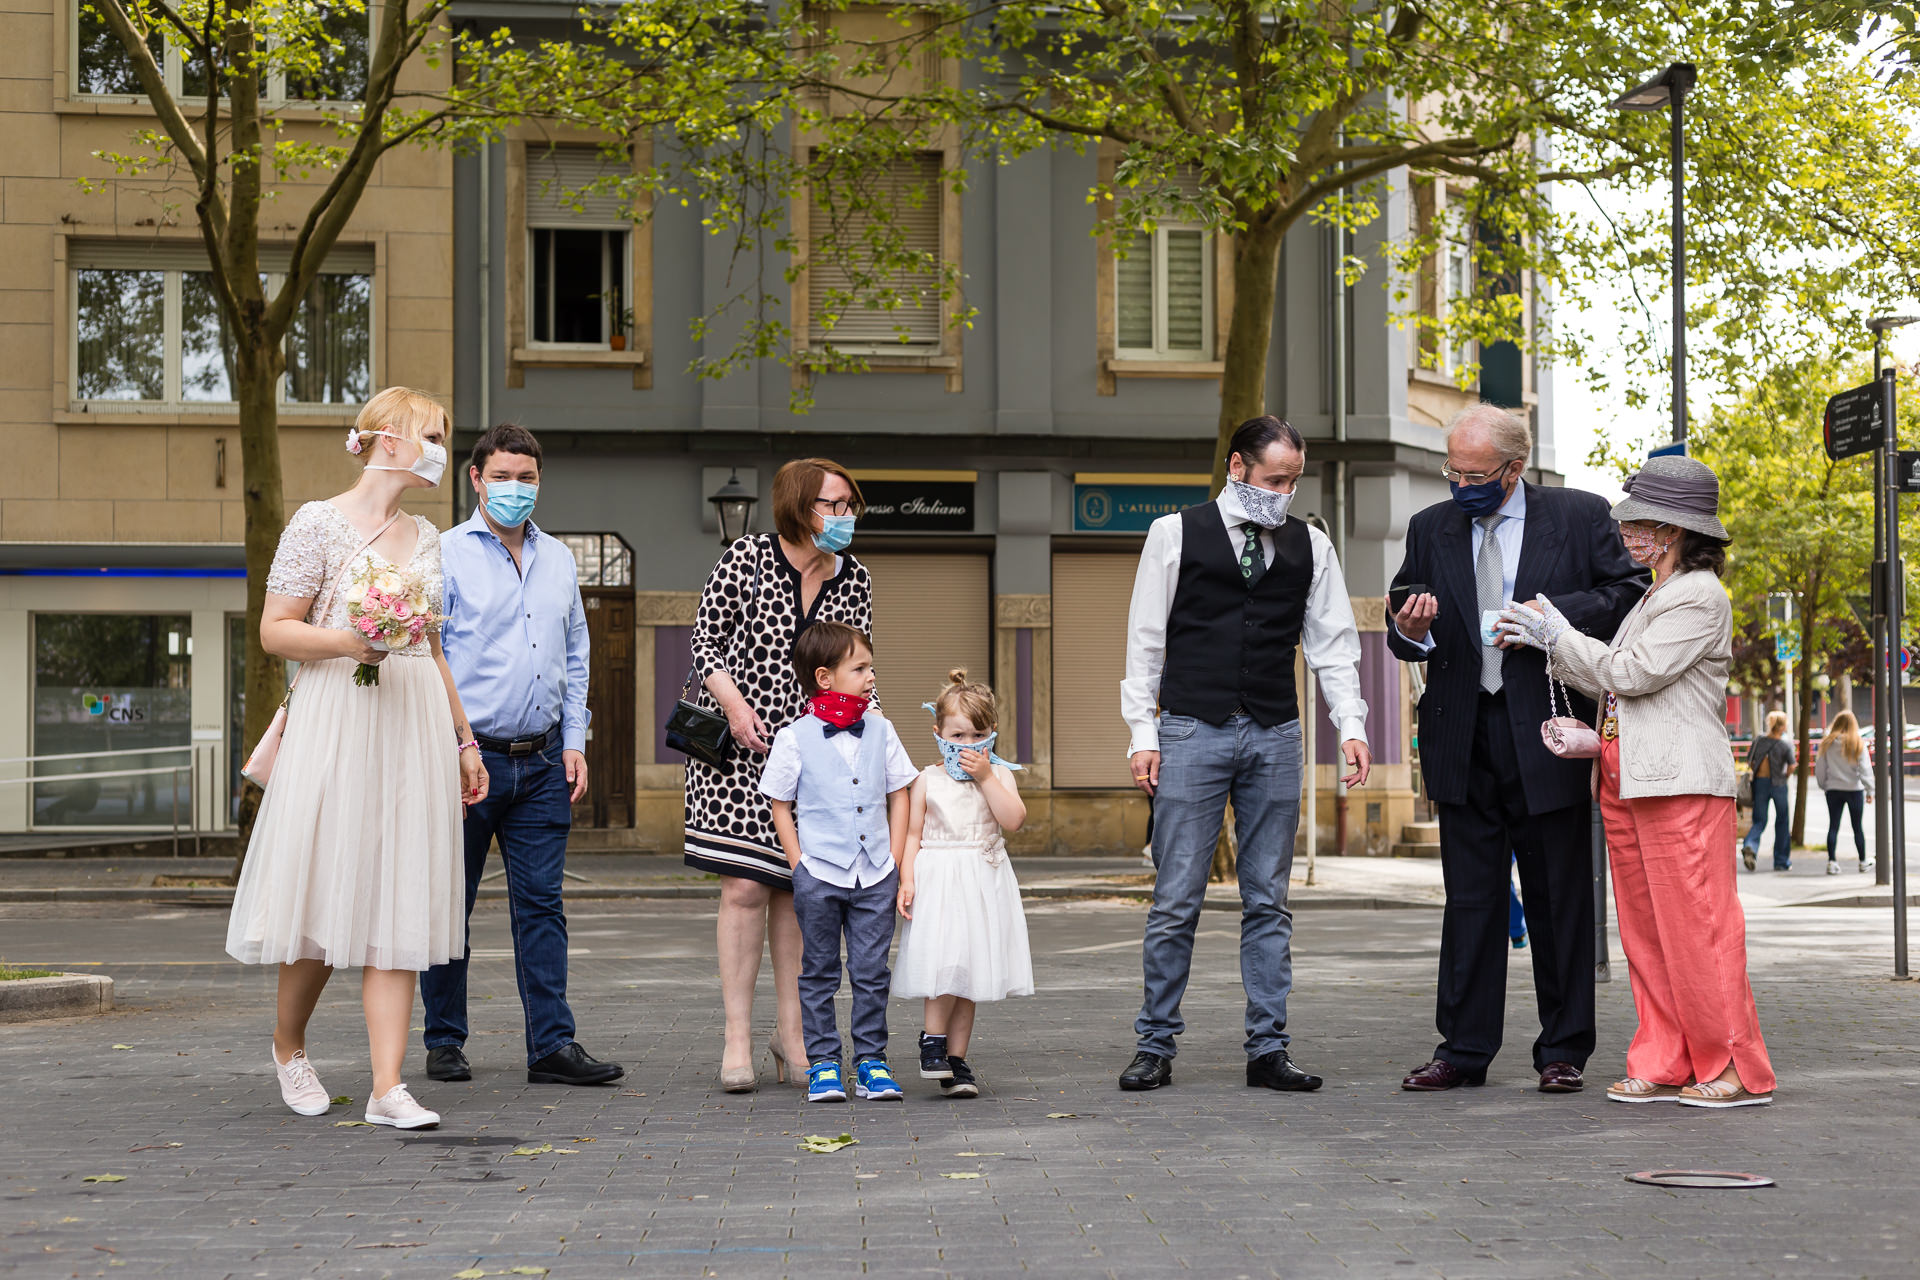 Dudelange City Hall of Luxembourg Elopement Photos | The bride, groom, and their families meet outside before the ceremony wearing face masks